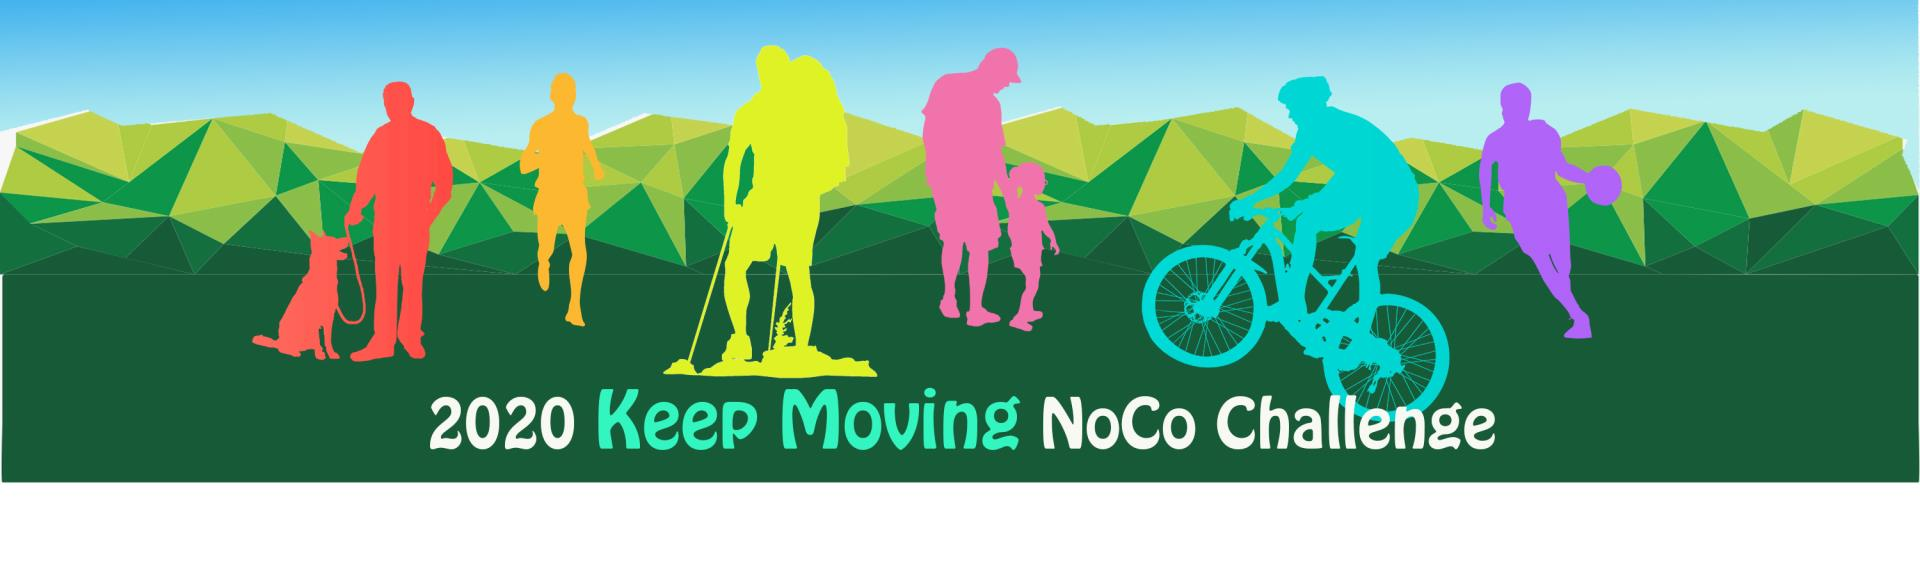 keep moving noco